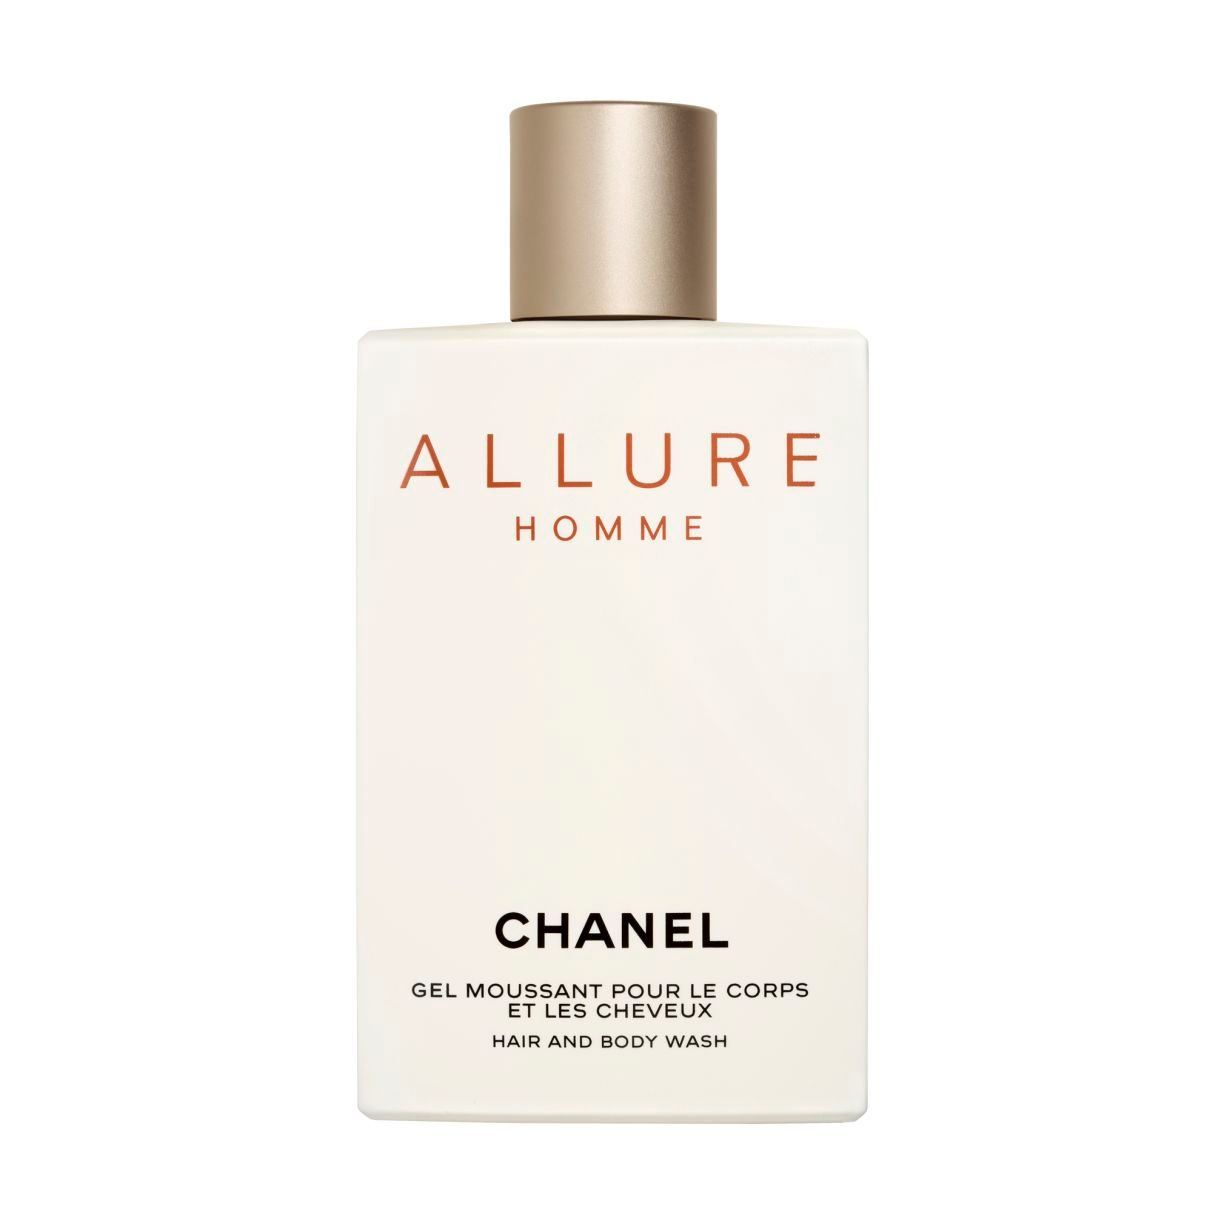 ALLURE HOMME HAIR AND BODY WASH 200ml